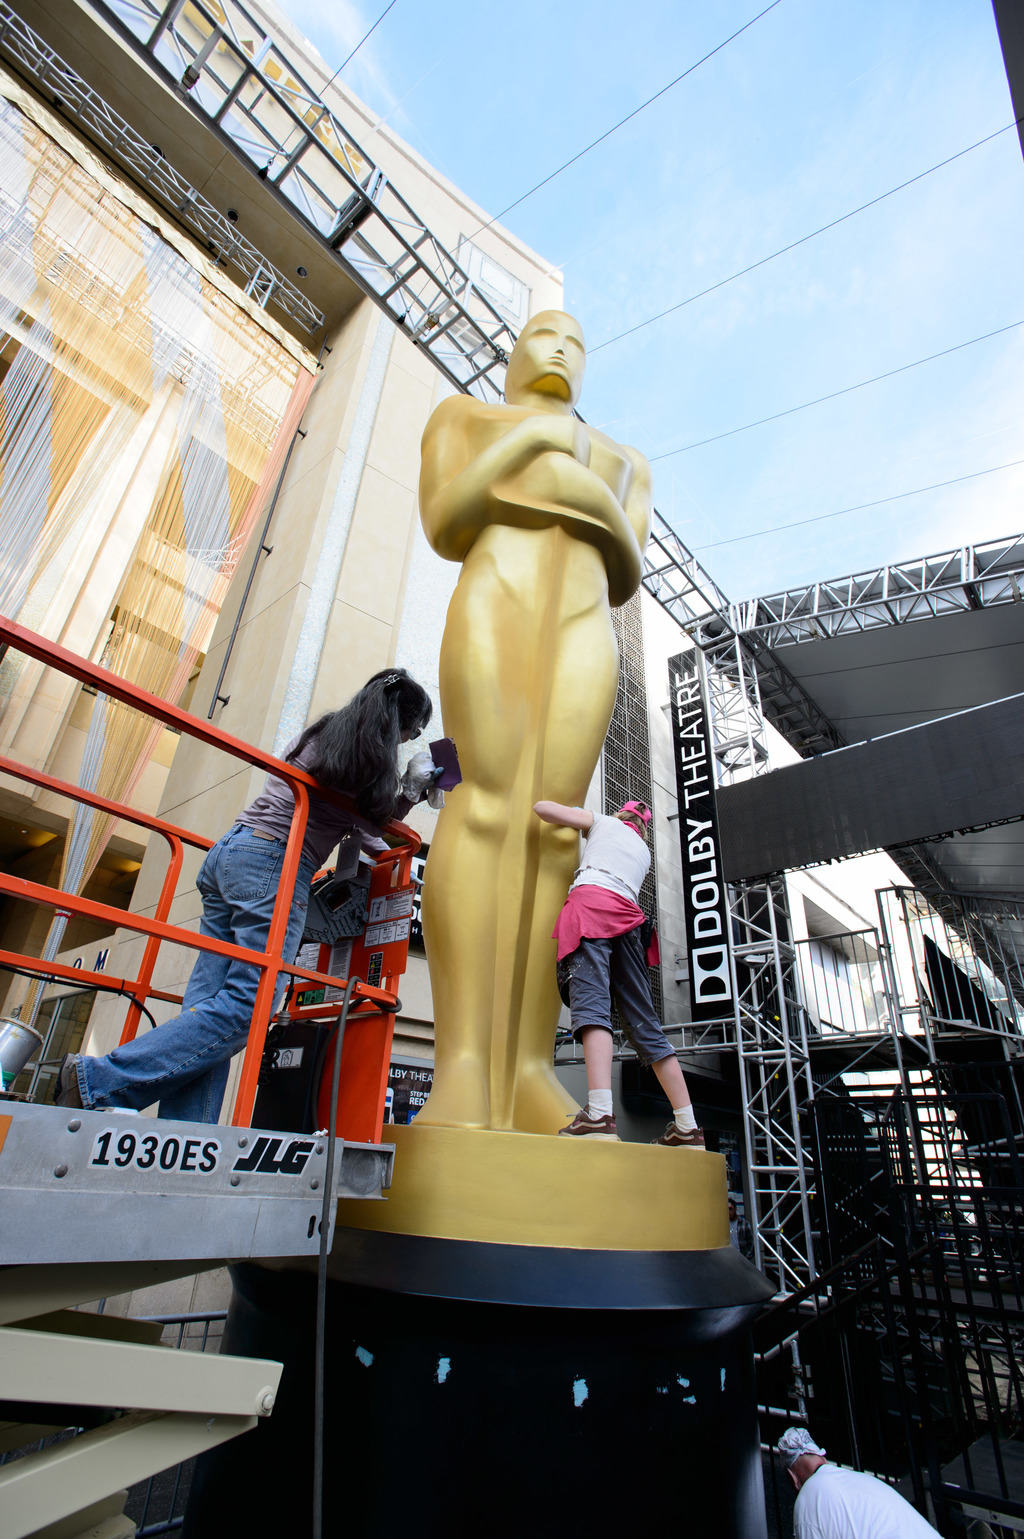 Preparations continue Tuesday February 23, 2016 for the 88th Oscars® for outstanding film achievements of 2015 which will be presented on Sunday, February 28, 2016 at the Dolby® Theatre and televised live by the ABC Television Network.